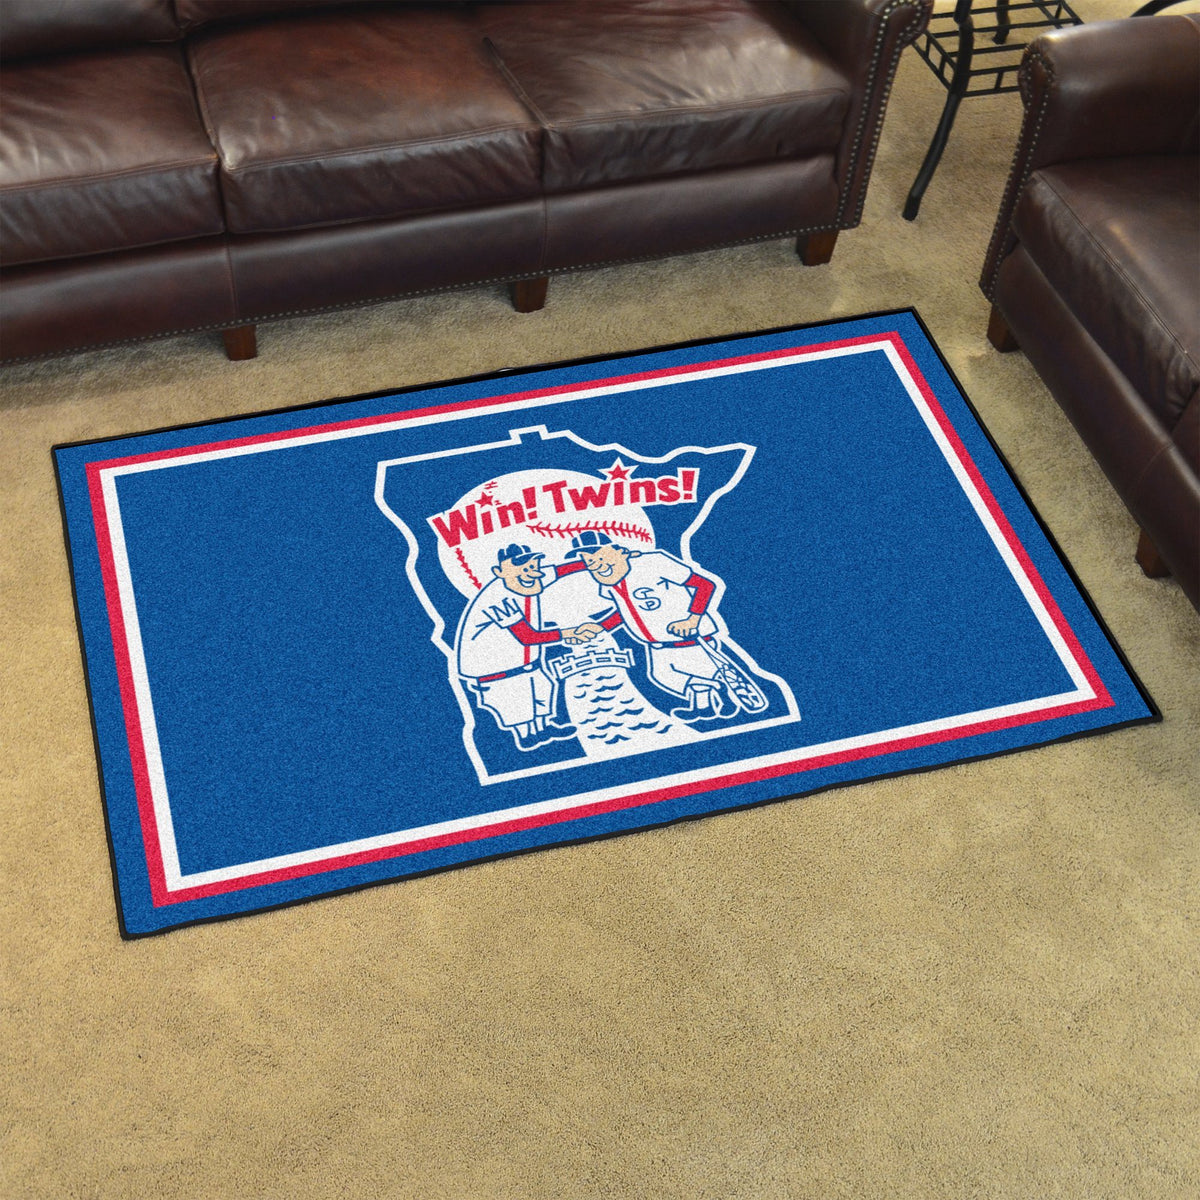 MLB Retro - 4' x 6' Rug MLB Retro Mats, Plush Rugs, 4x6 Rug, MLB, Home Fan Mats Minnesota Twins